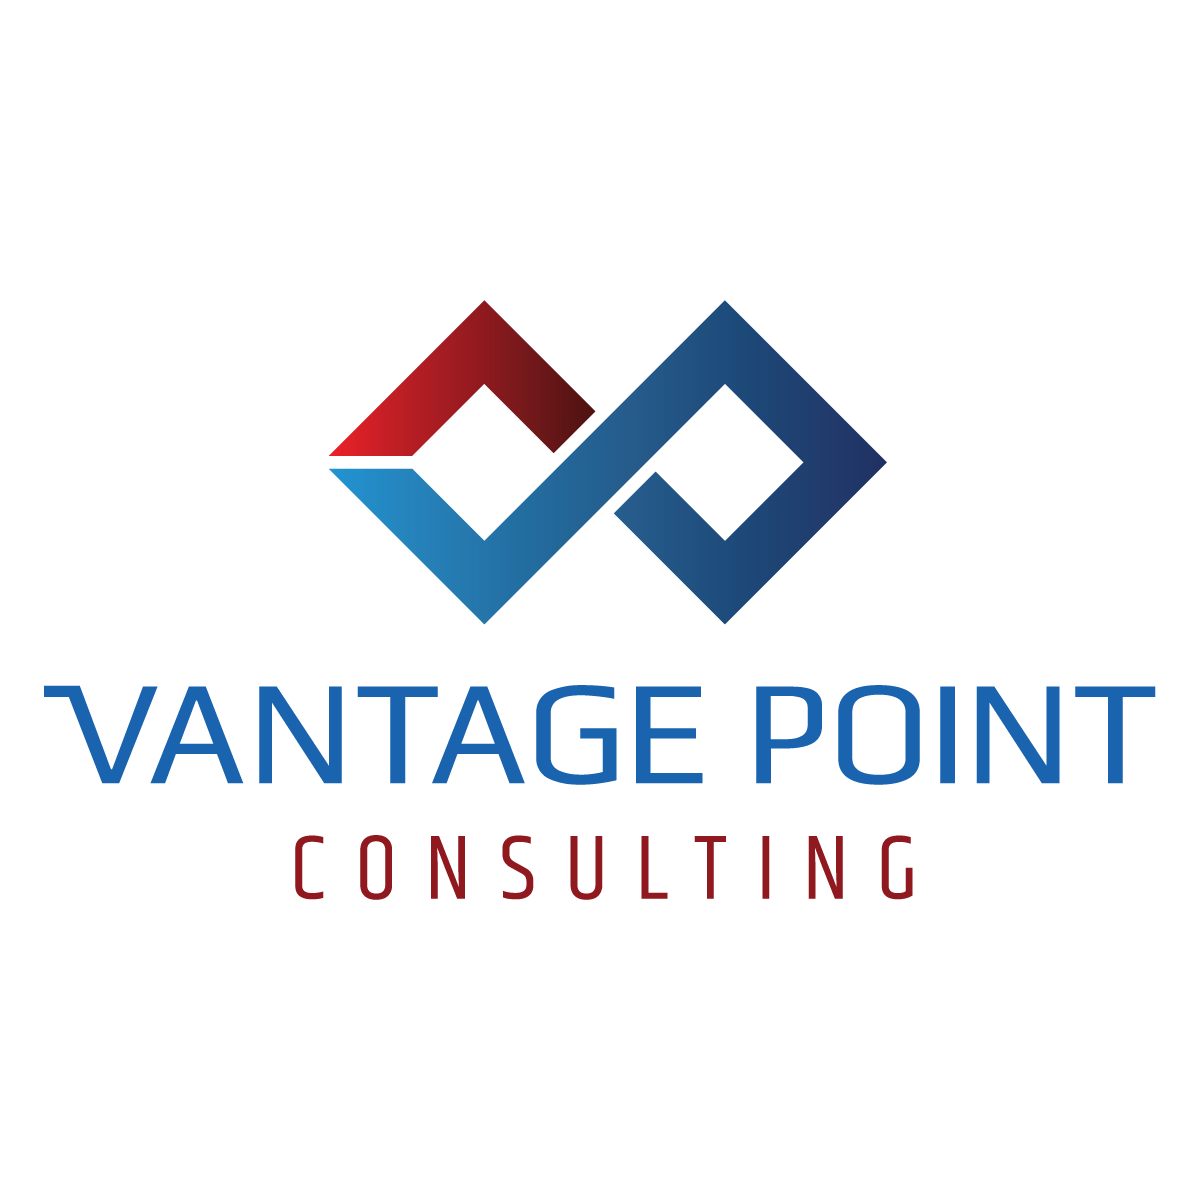 Vantage Point Consulting image 0